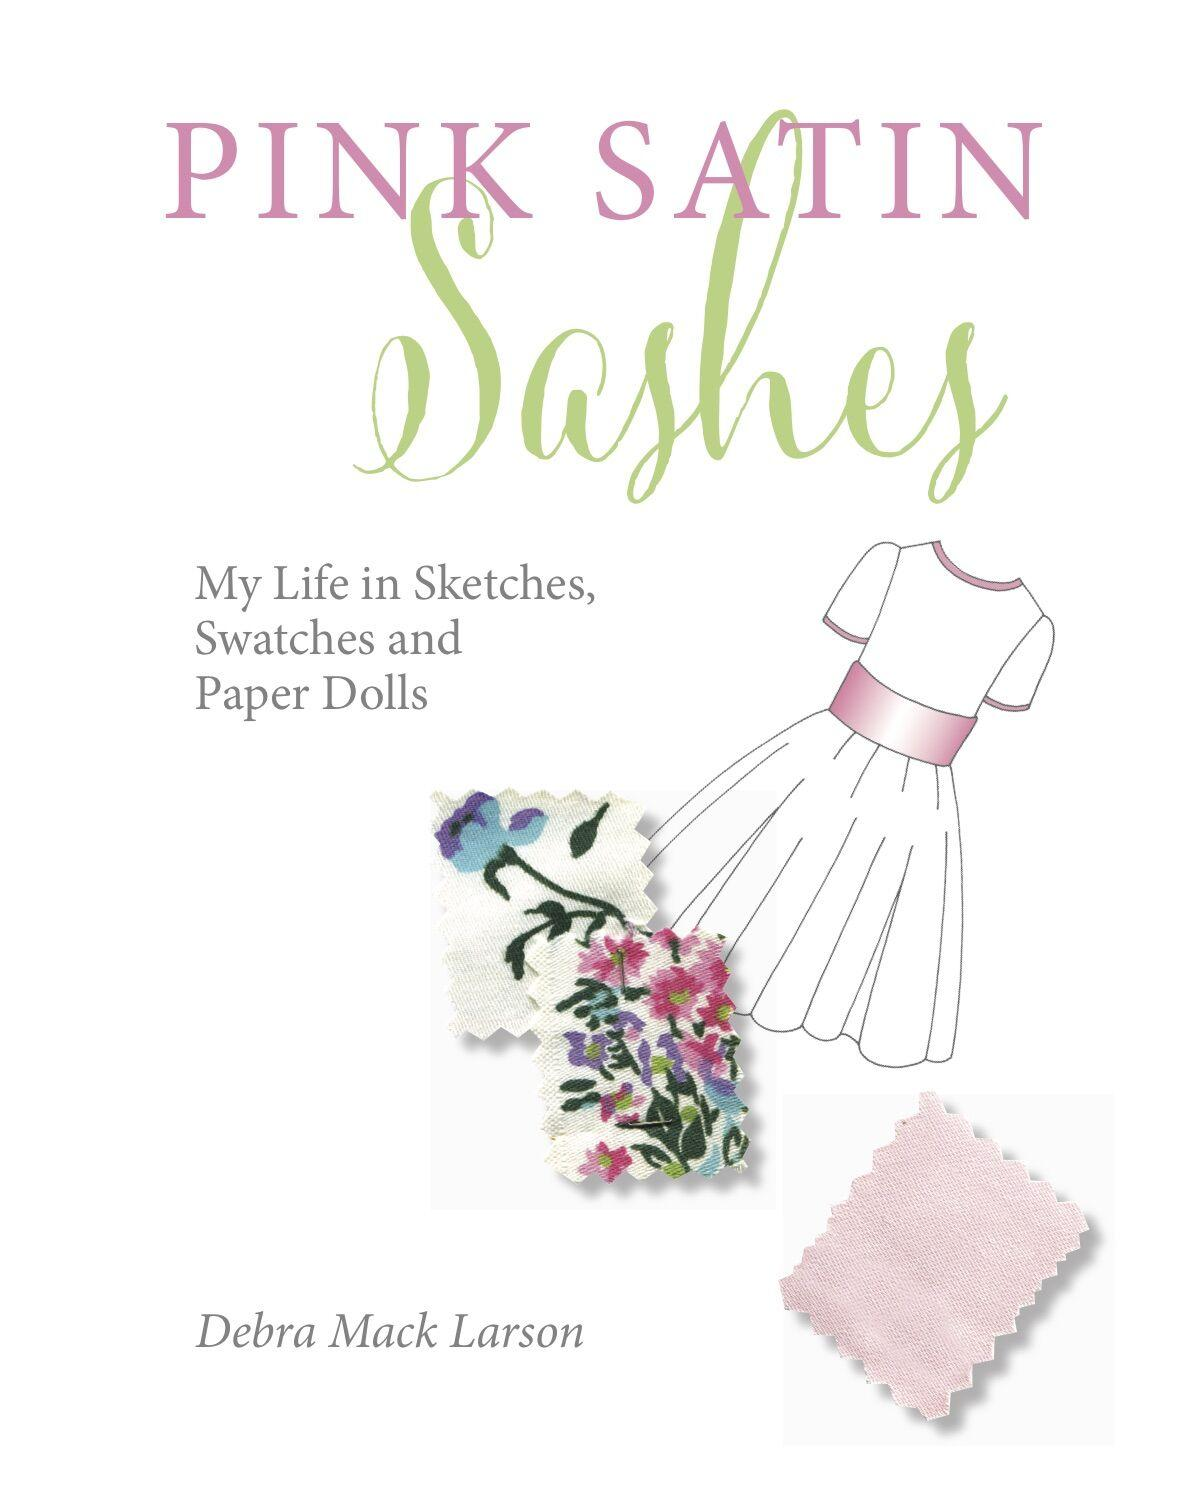 Pink Satin Sashes book cover